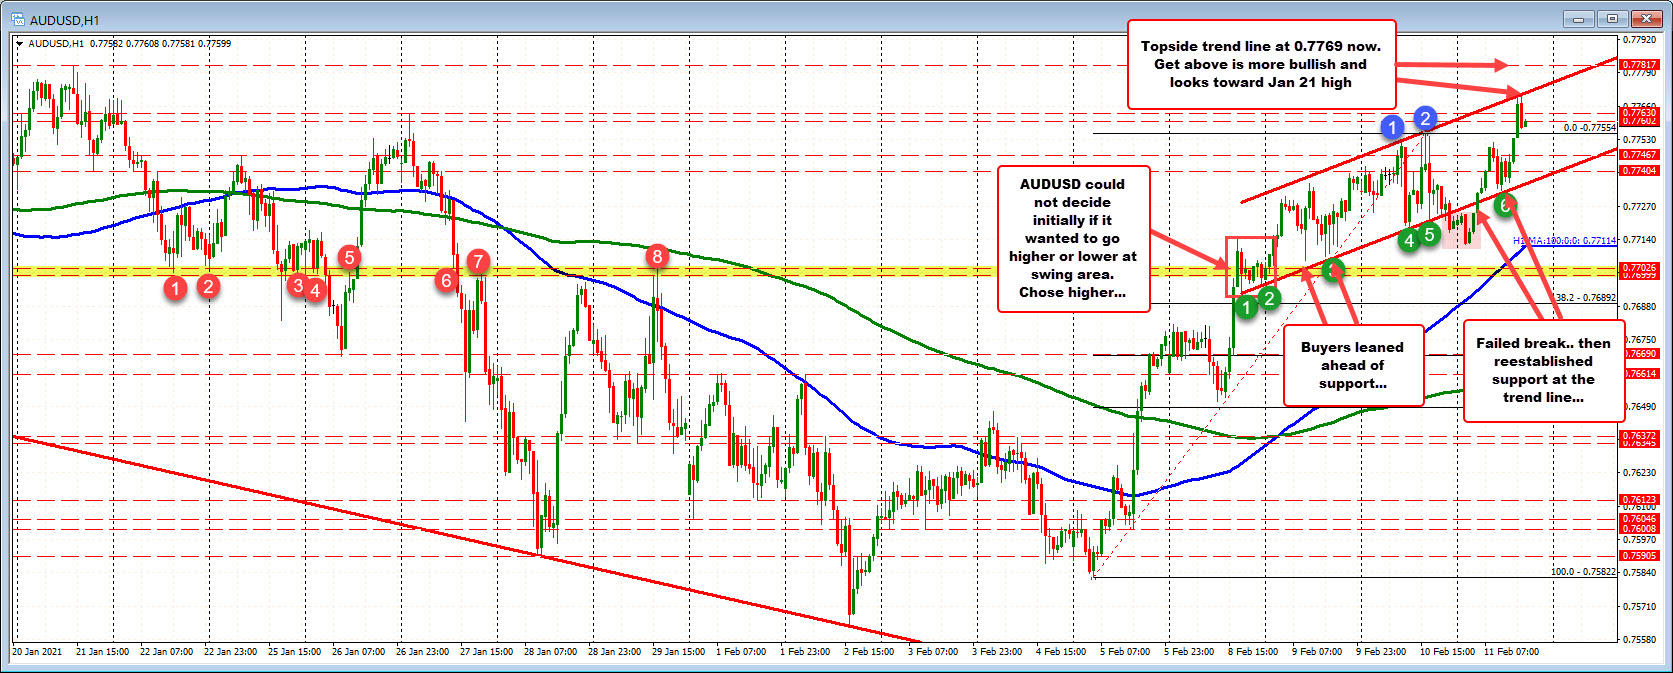 Steps higher after failed on break of lower trend line